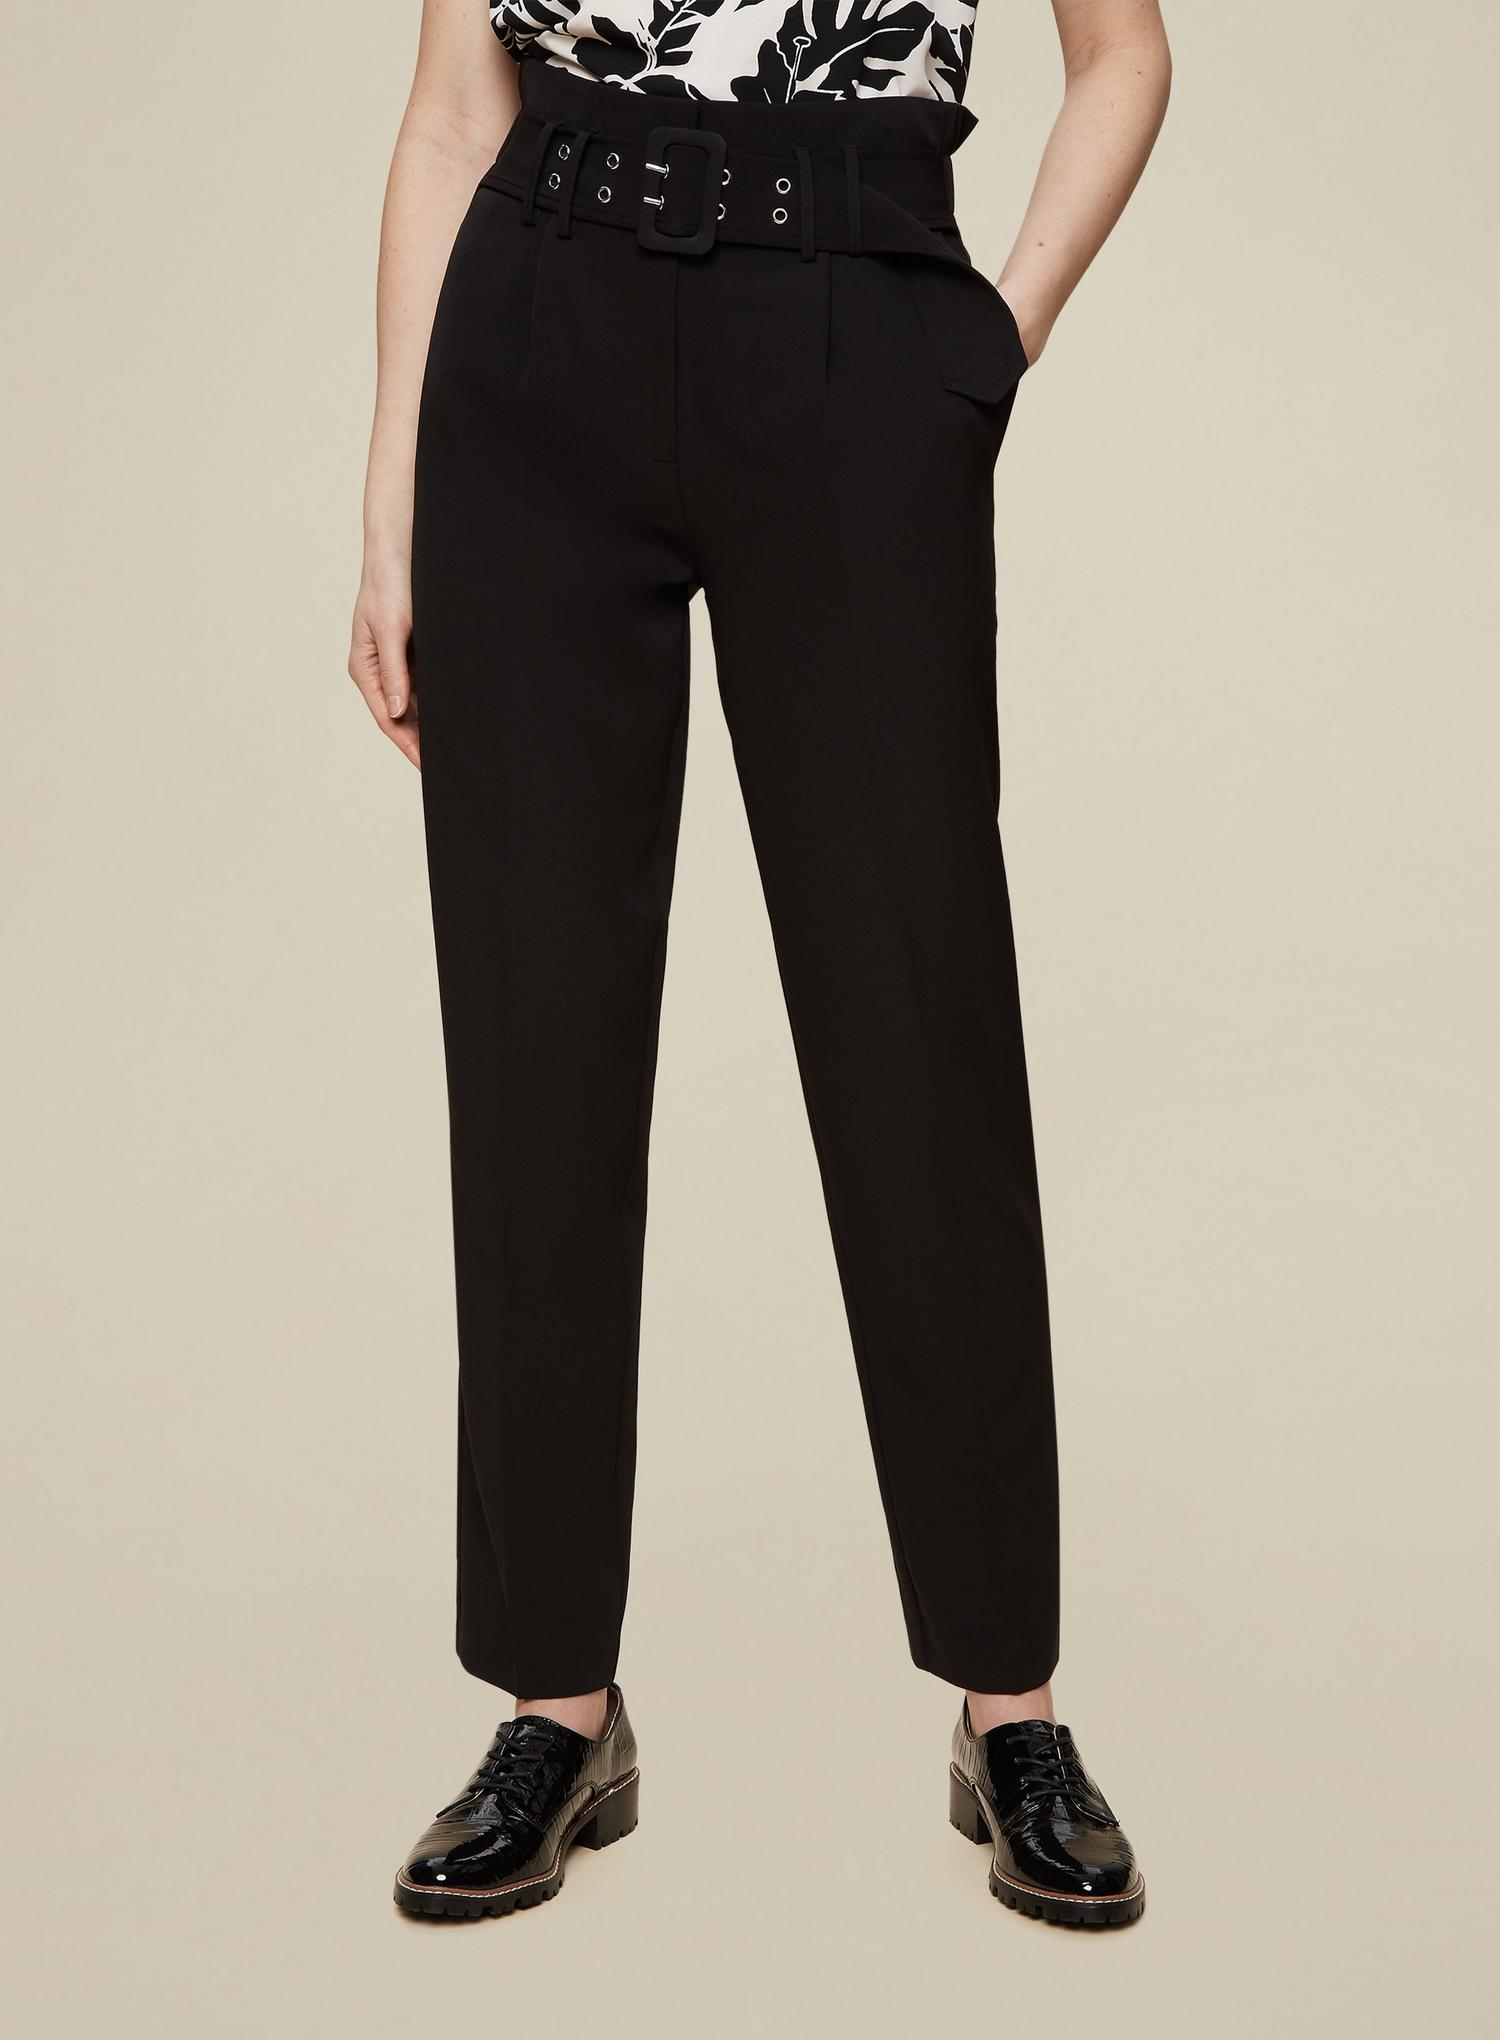 105 Tall Black Belted Trousers image number 1